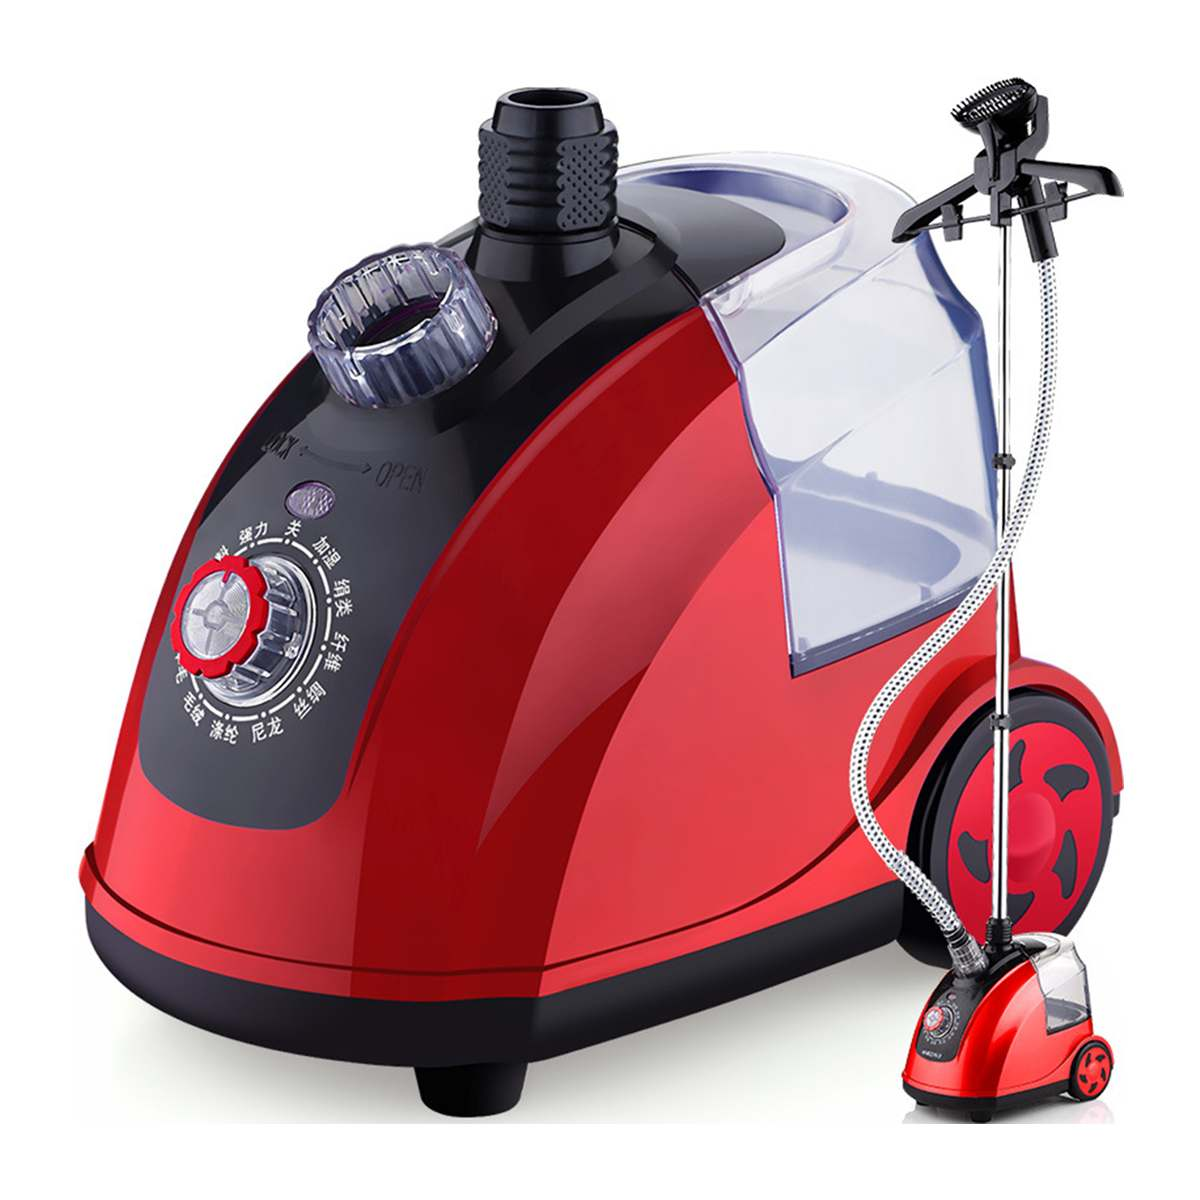 Garment Steamer Iron Adjustable Clothes Steamer With 70 Minutes Of Continuous Steam 1800W 1.8L Water Tank 26s Fast Steam